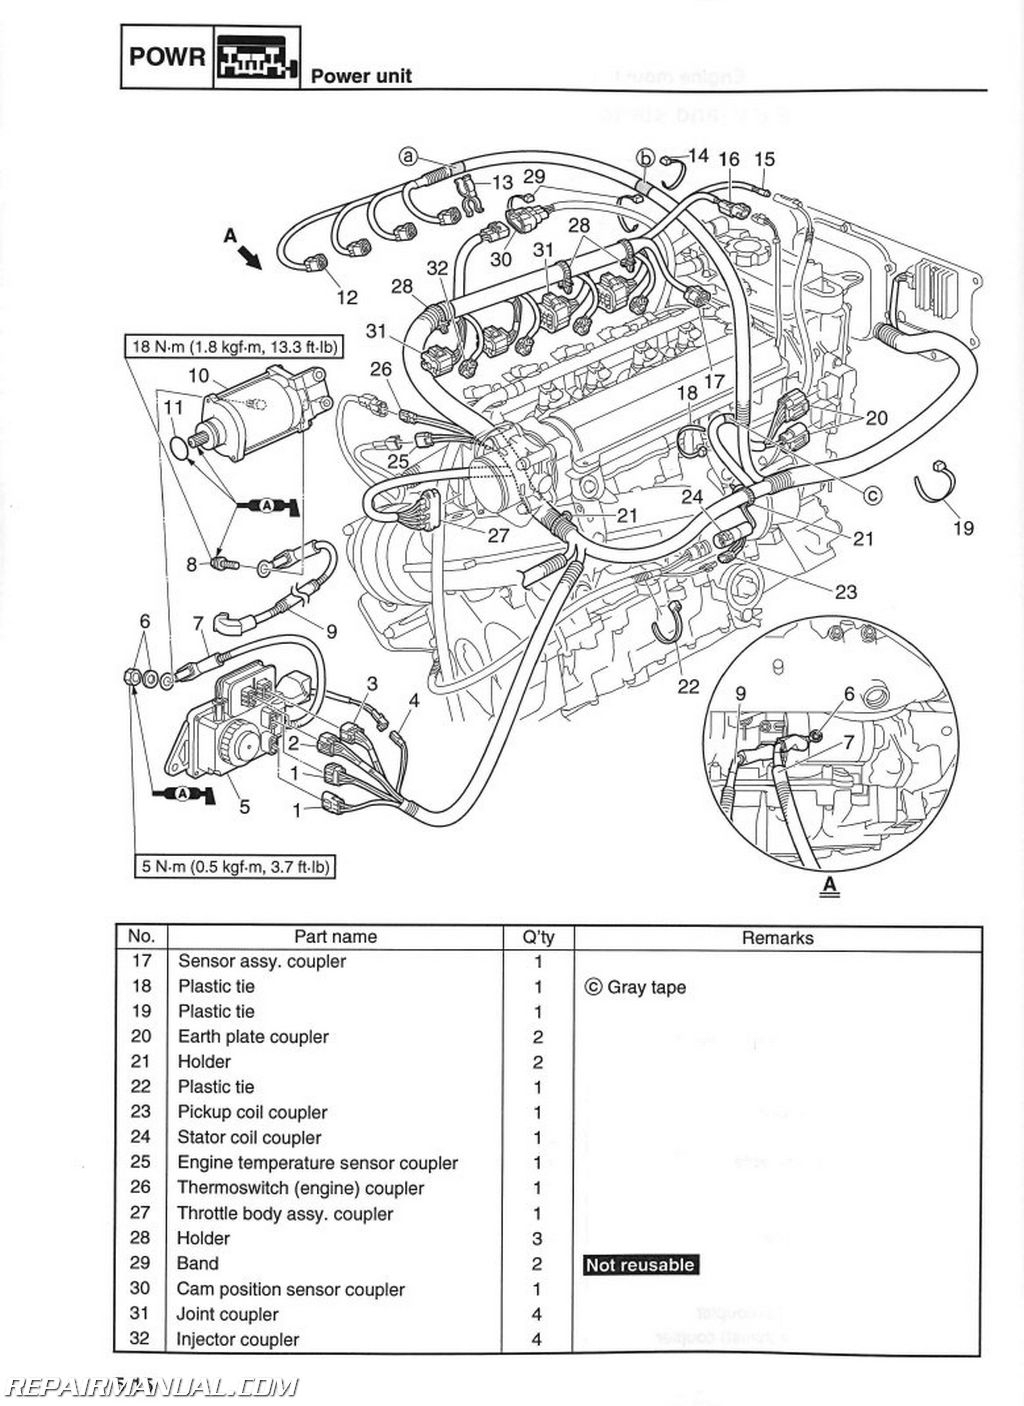 Taotao 125 Atv Wiring Diagram